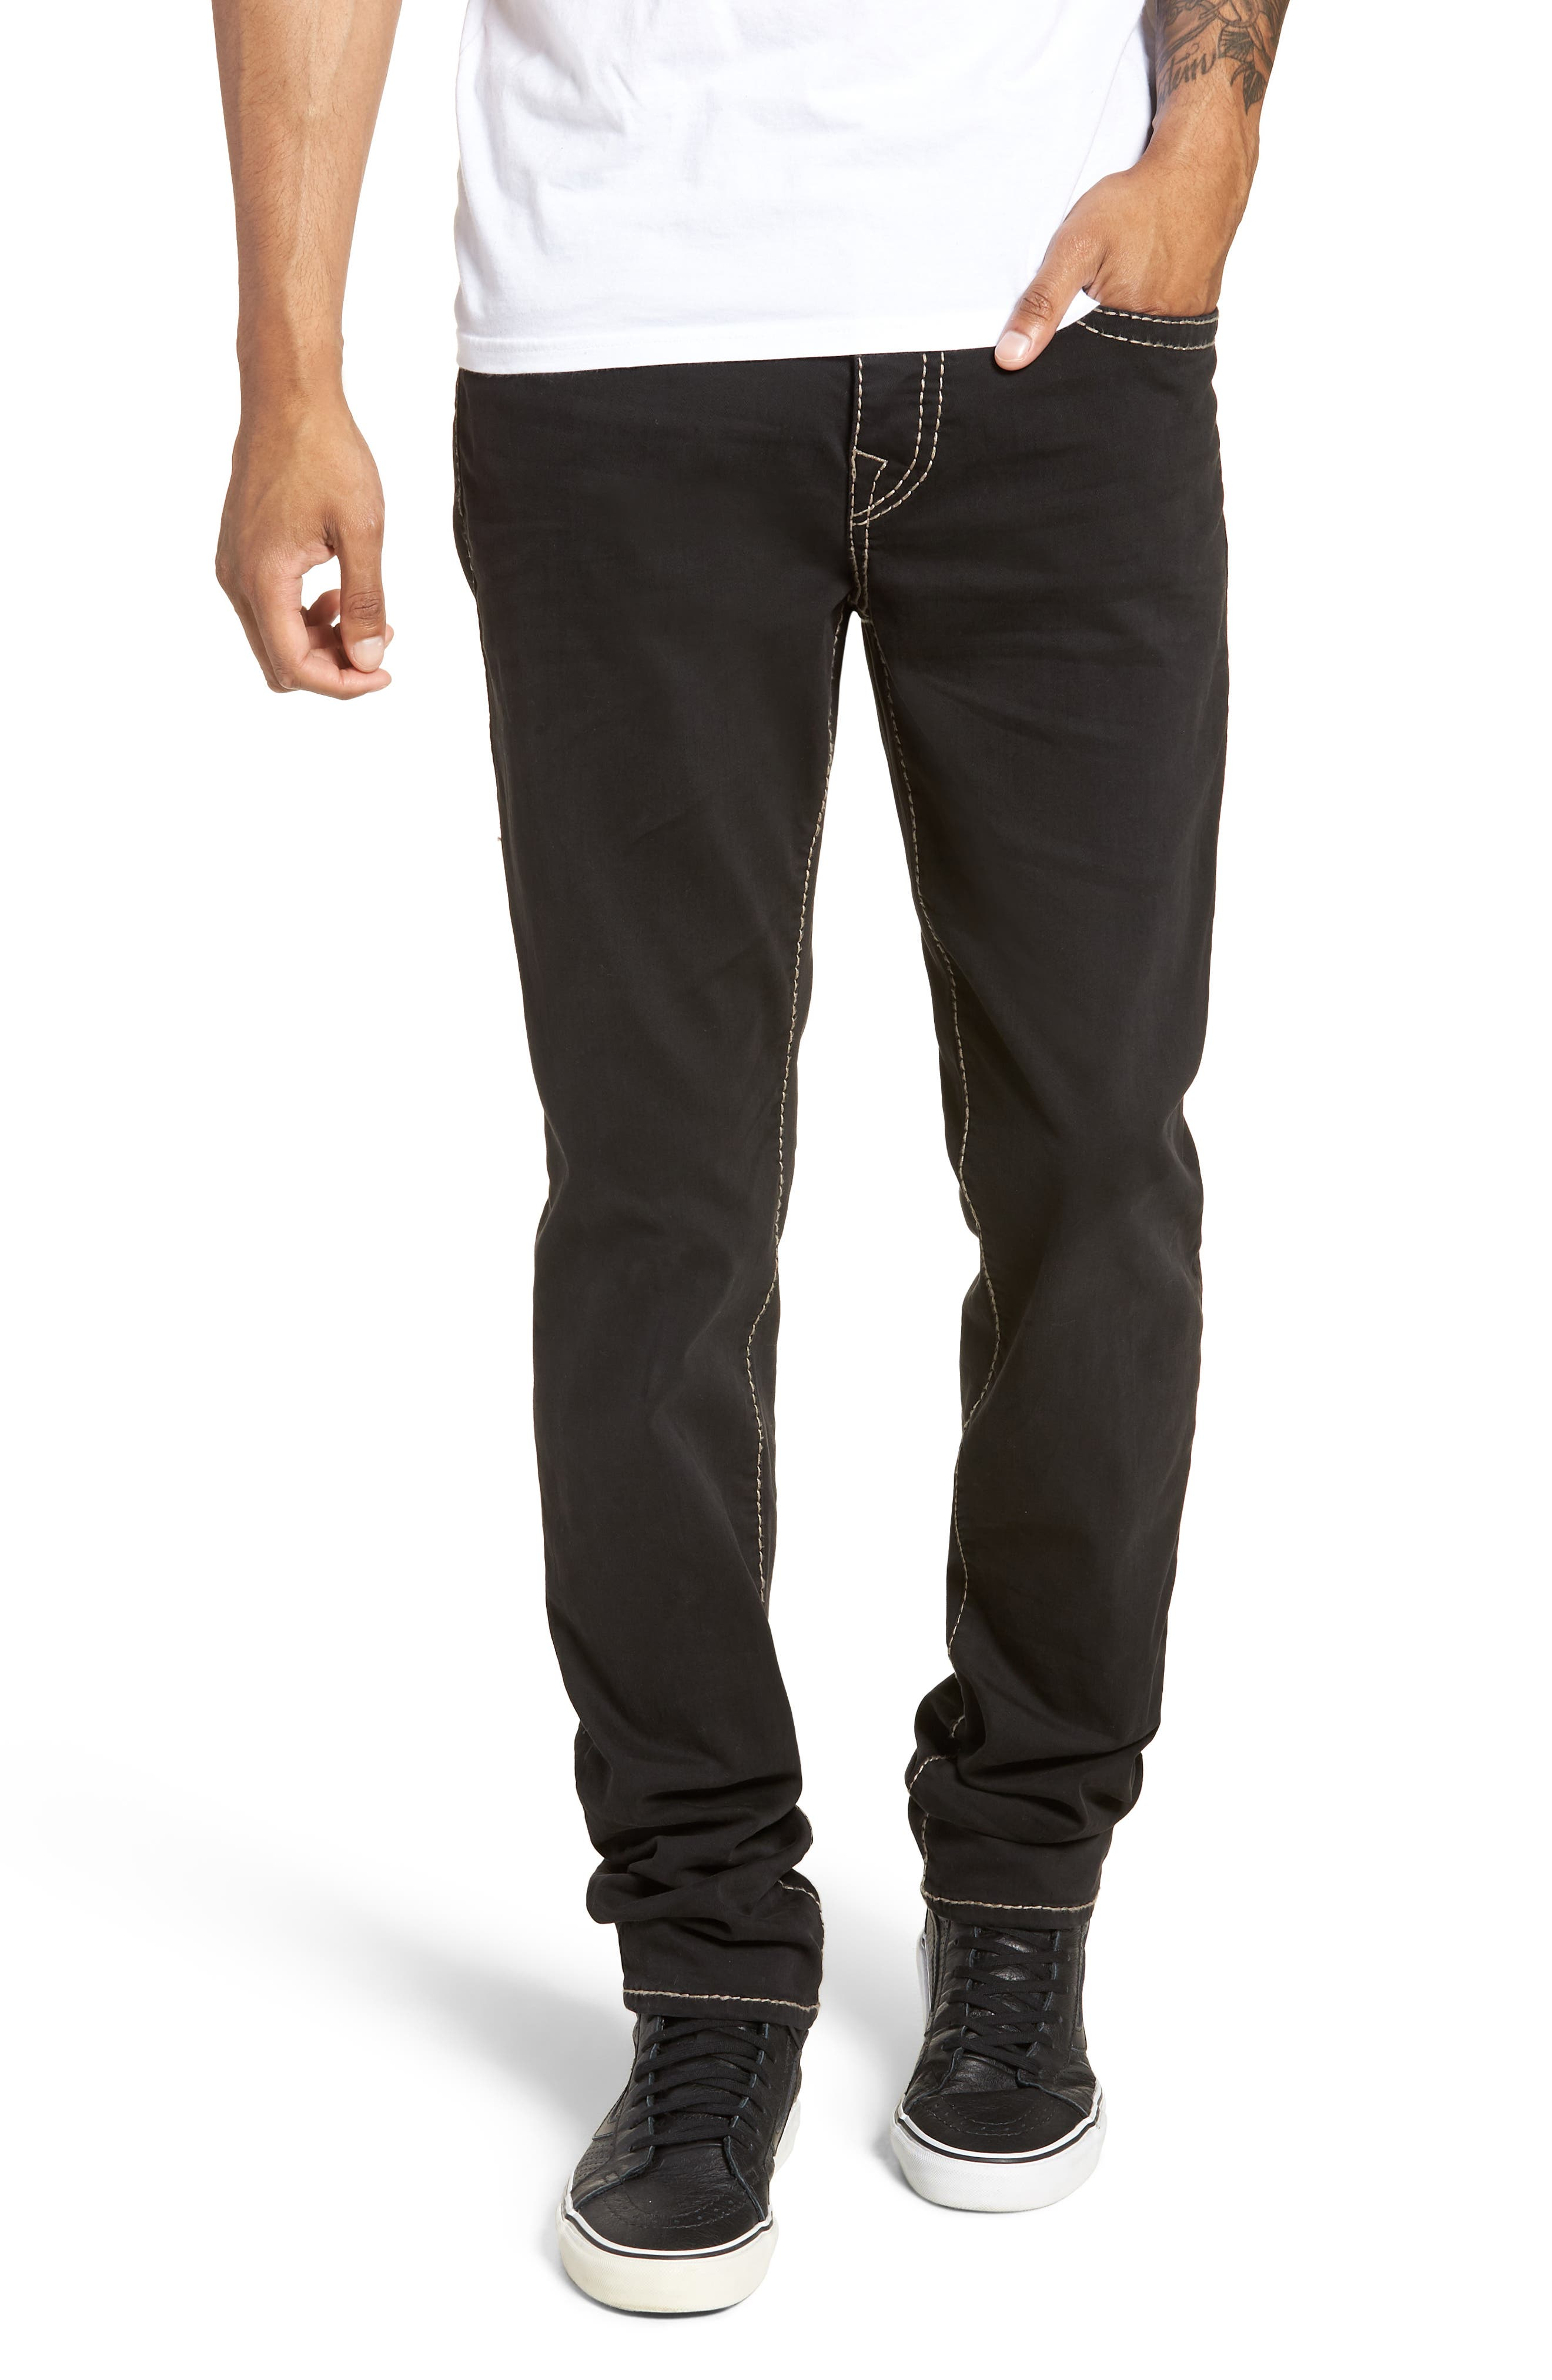 Rocco Skinny Fit Jeans,                         Main,                         color, Black